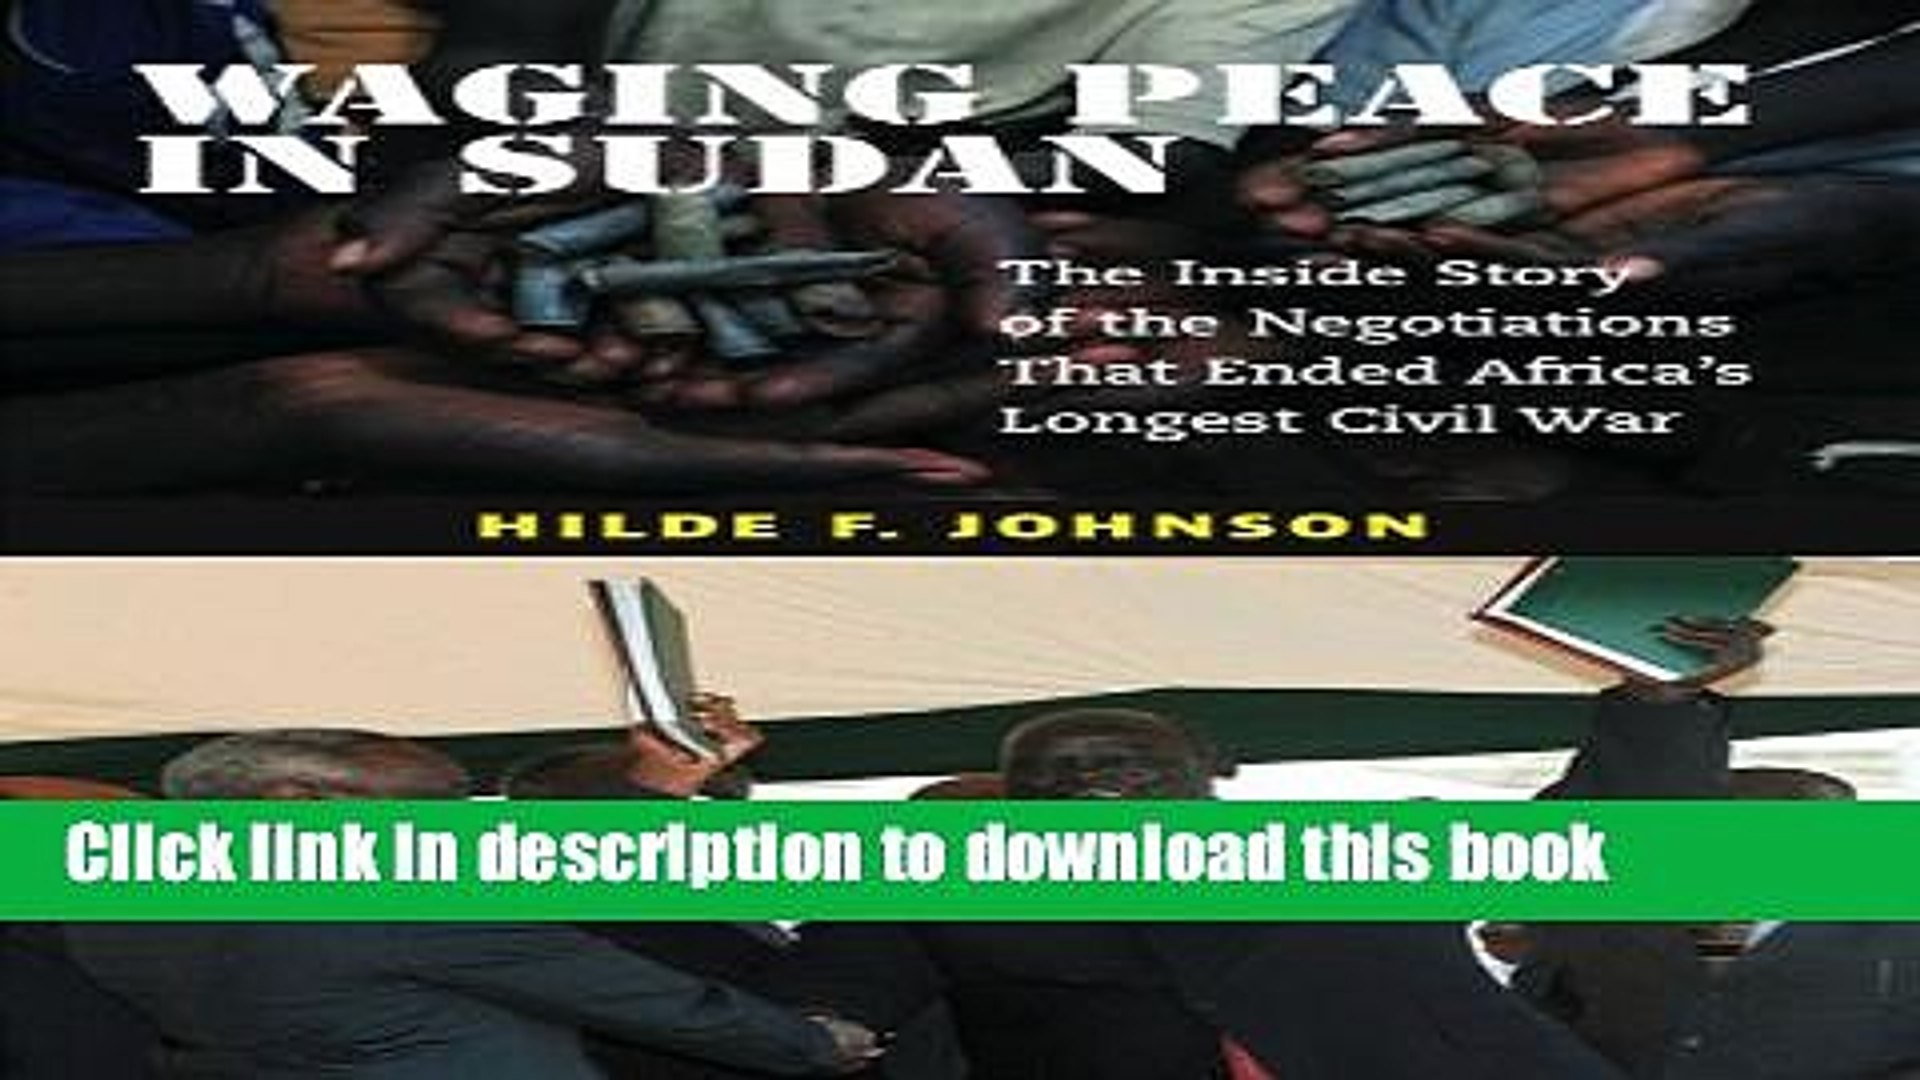 Read Waging Peace in Sudan: The Inside Story of the Negotiations That Ended Africa s Longest Civil